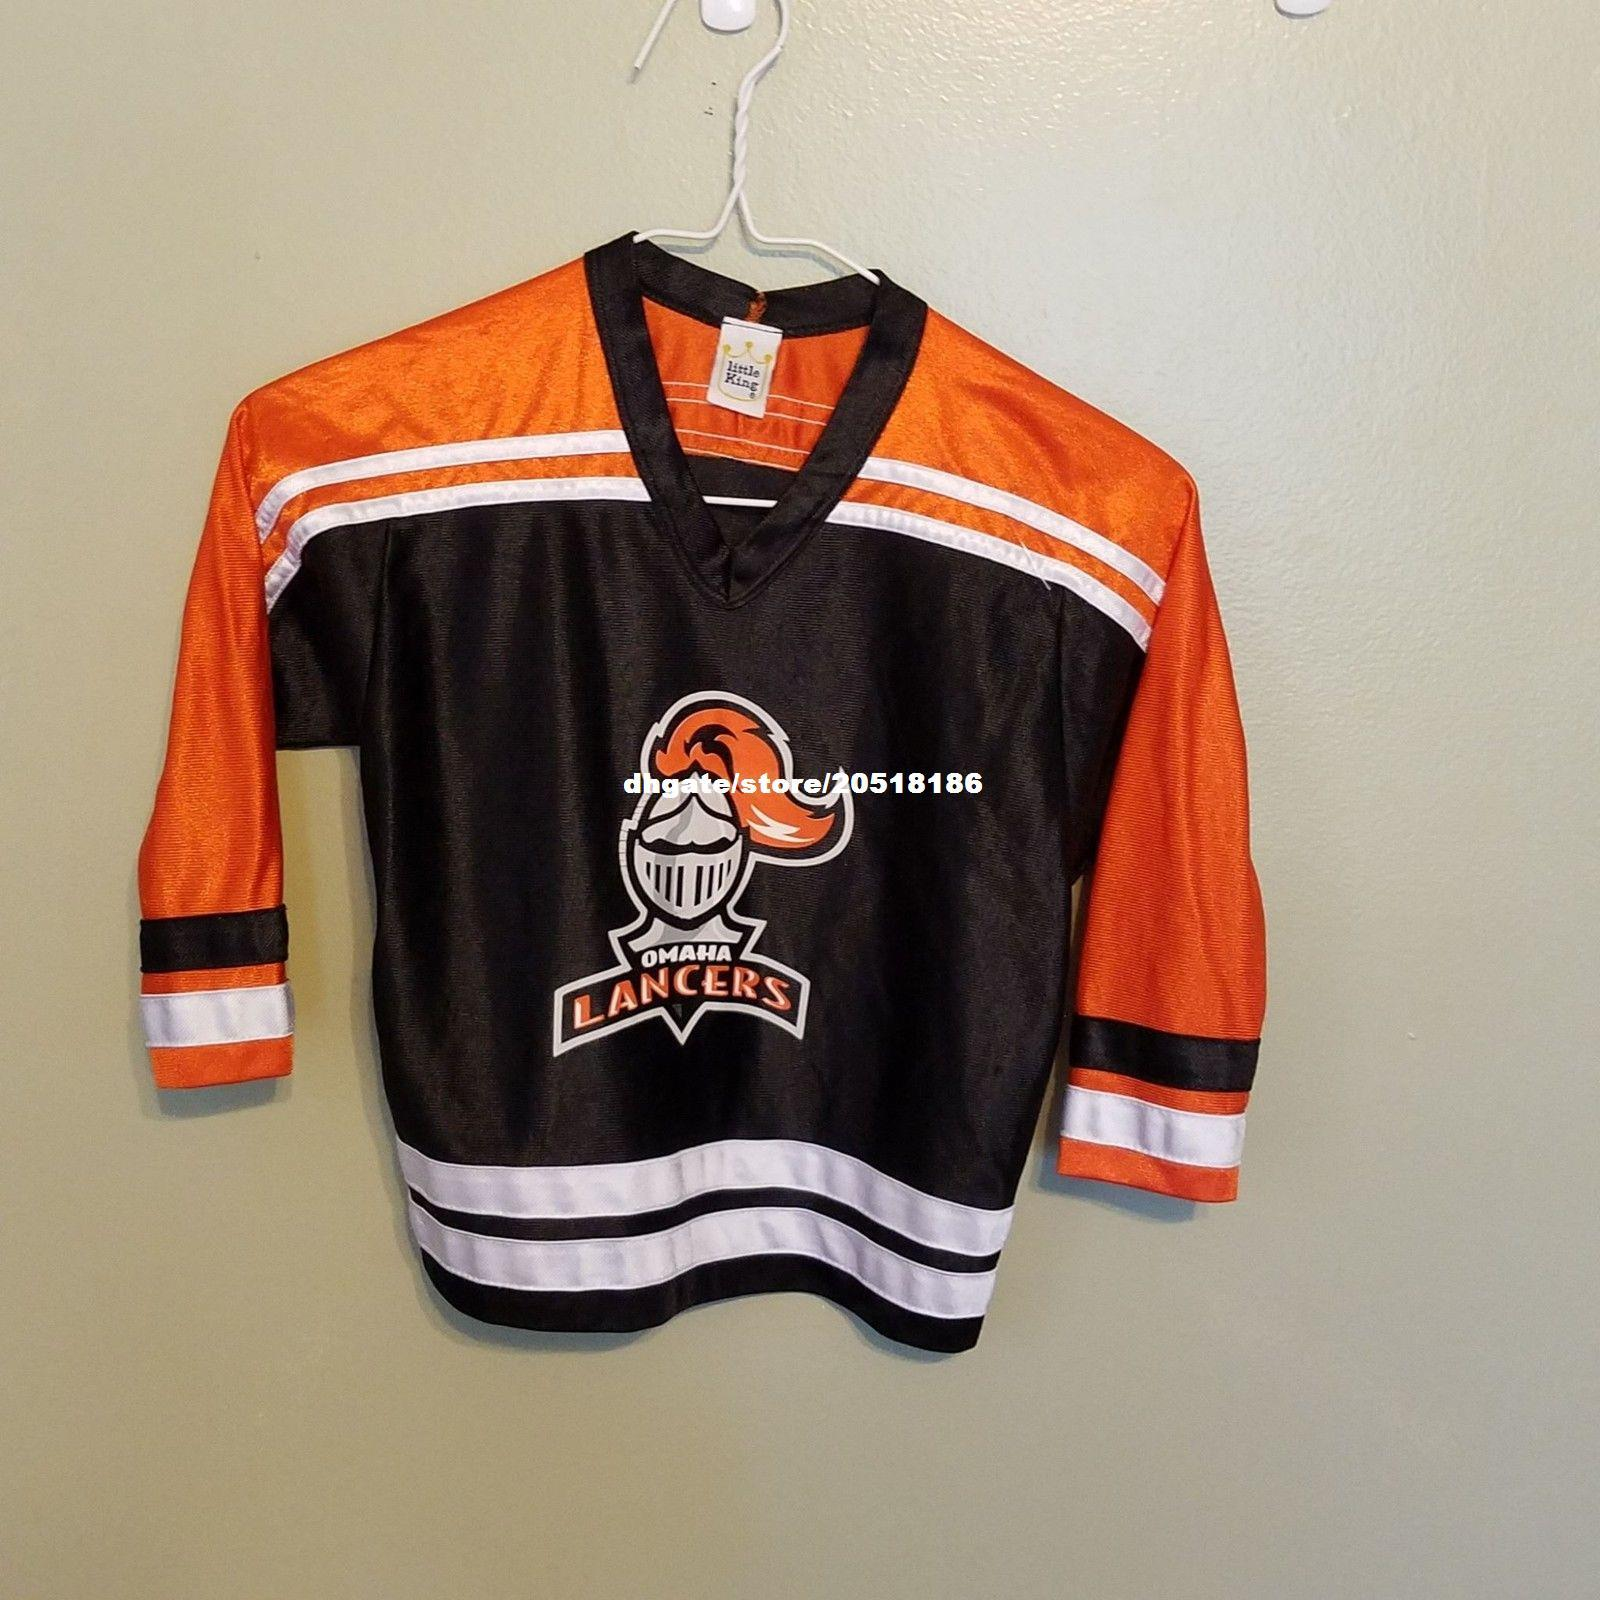 reputable site 037f9 23acf 2019 Cheap Custom OMAHA LANCERS JERSEYS TODDLER Stitched Men'S Hockey  Jersey From Nfljersey1, $26.5 | DHgate.Com